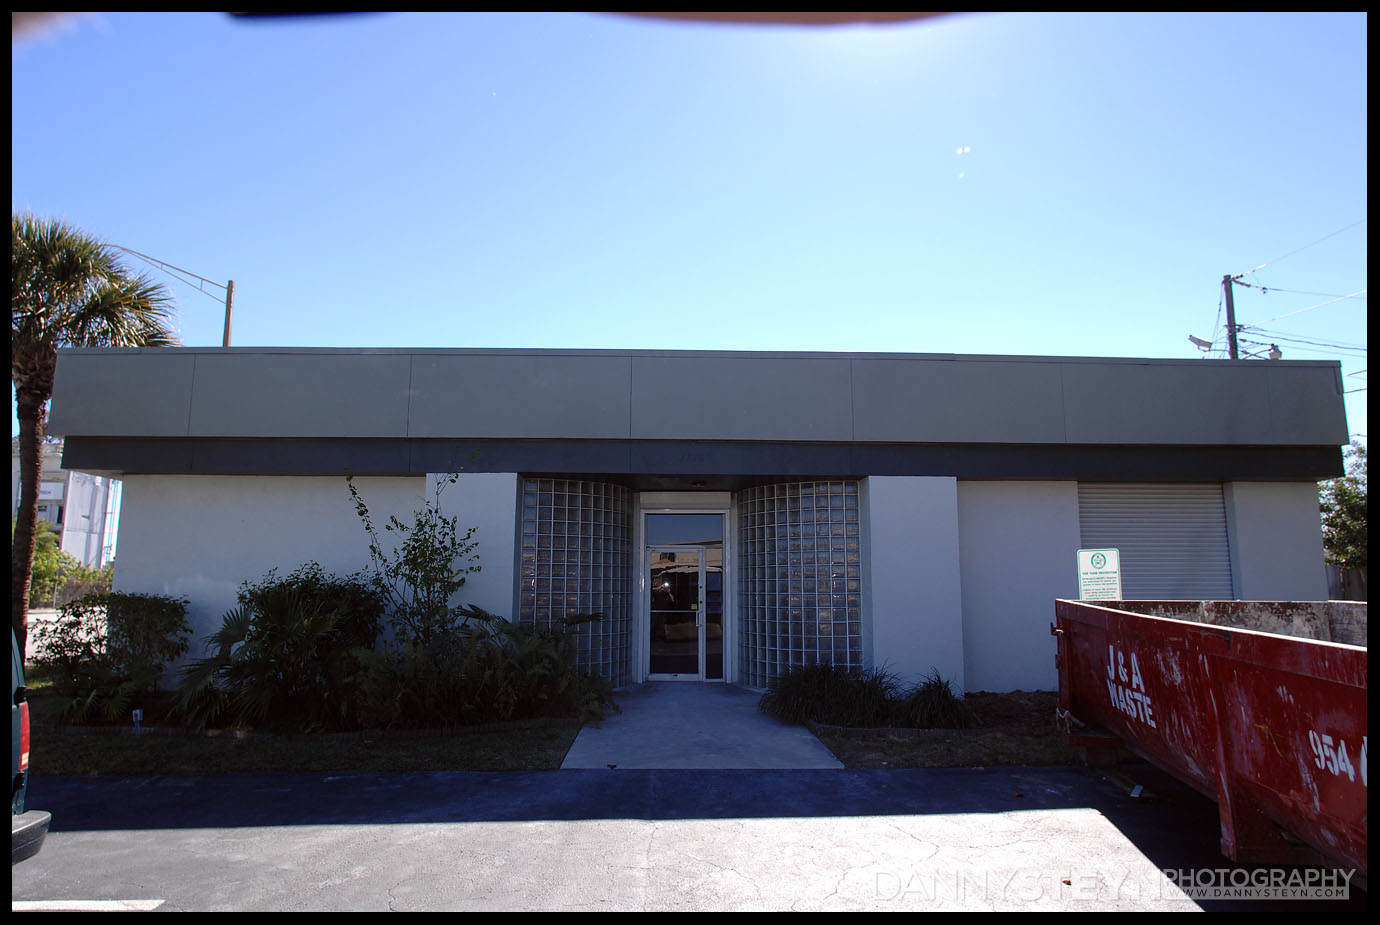 Danny Steyn Photography Studio - Exterior - North Entrance